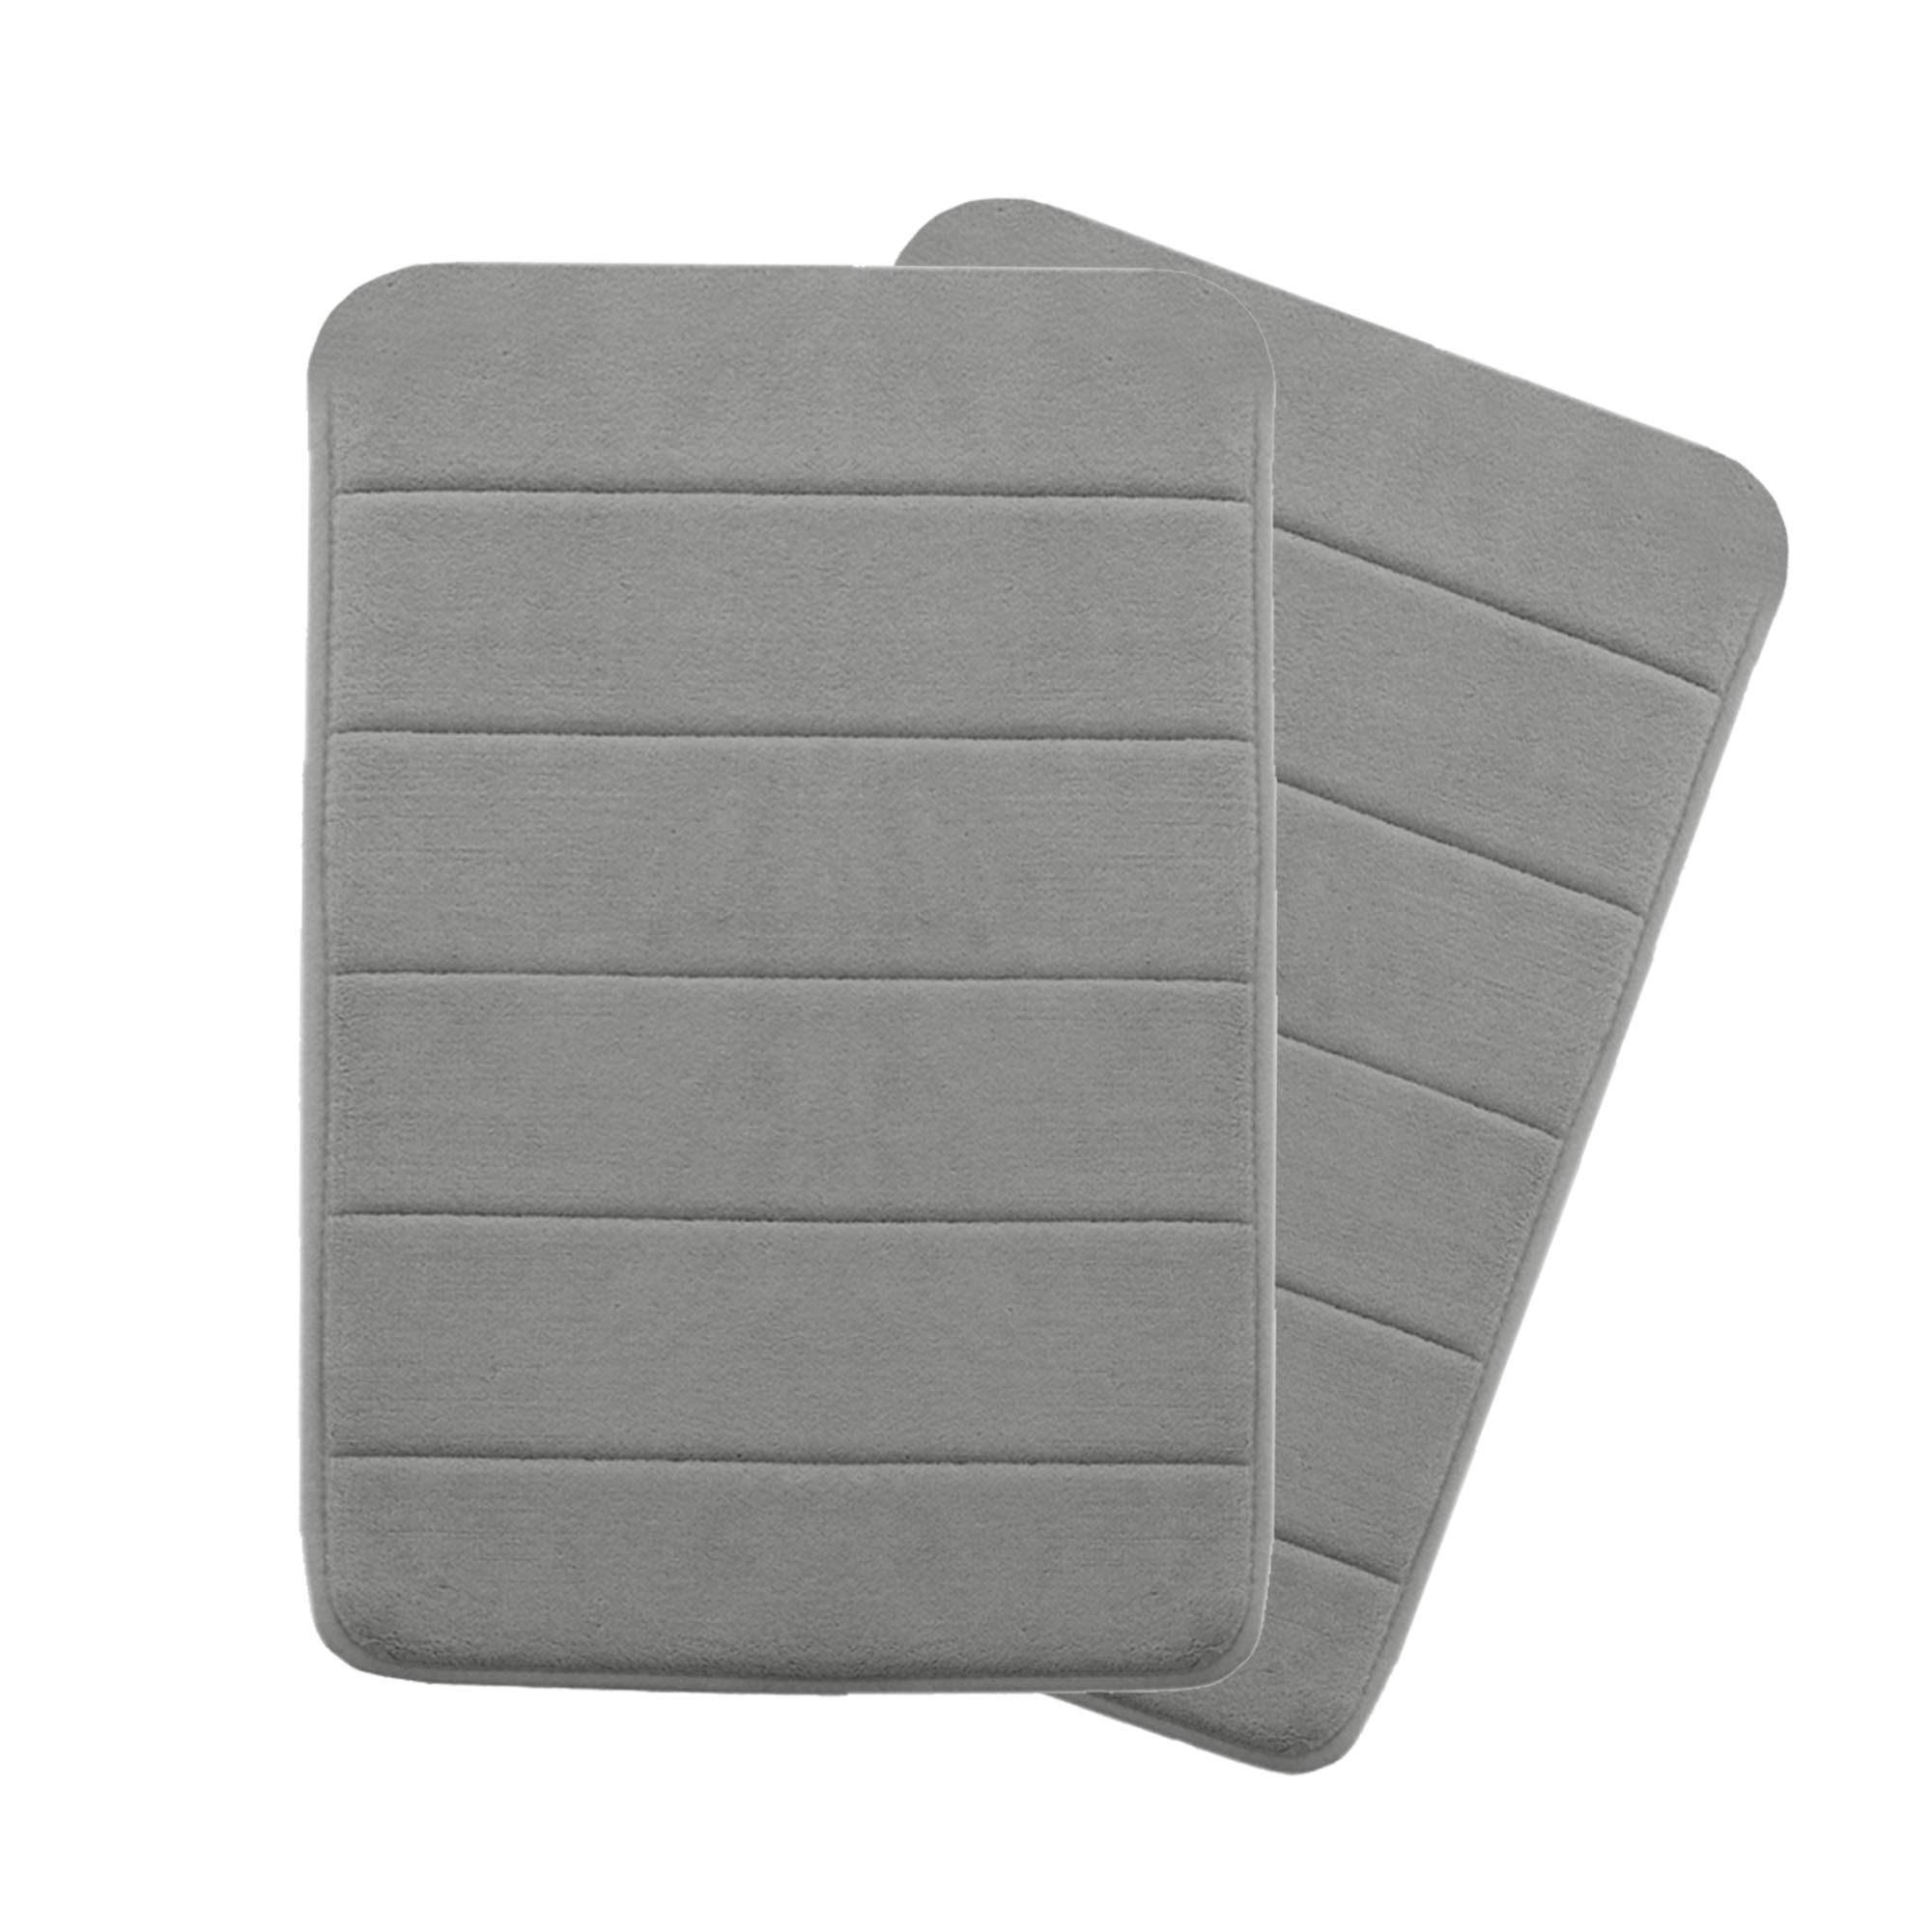 Ordinaire Memory Foam Coral Velvet Non Slip Bathroom Mat/Bath Rug, 17W X 24L Inches  Two Pieces (Gray Striped Pattern)